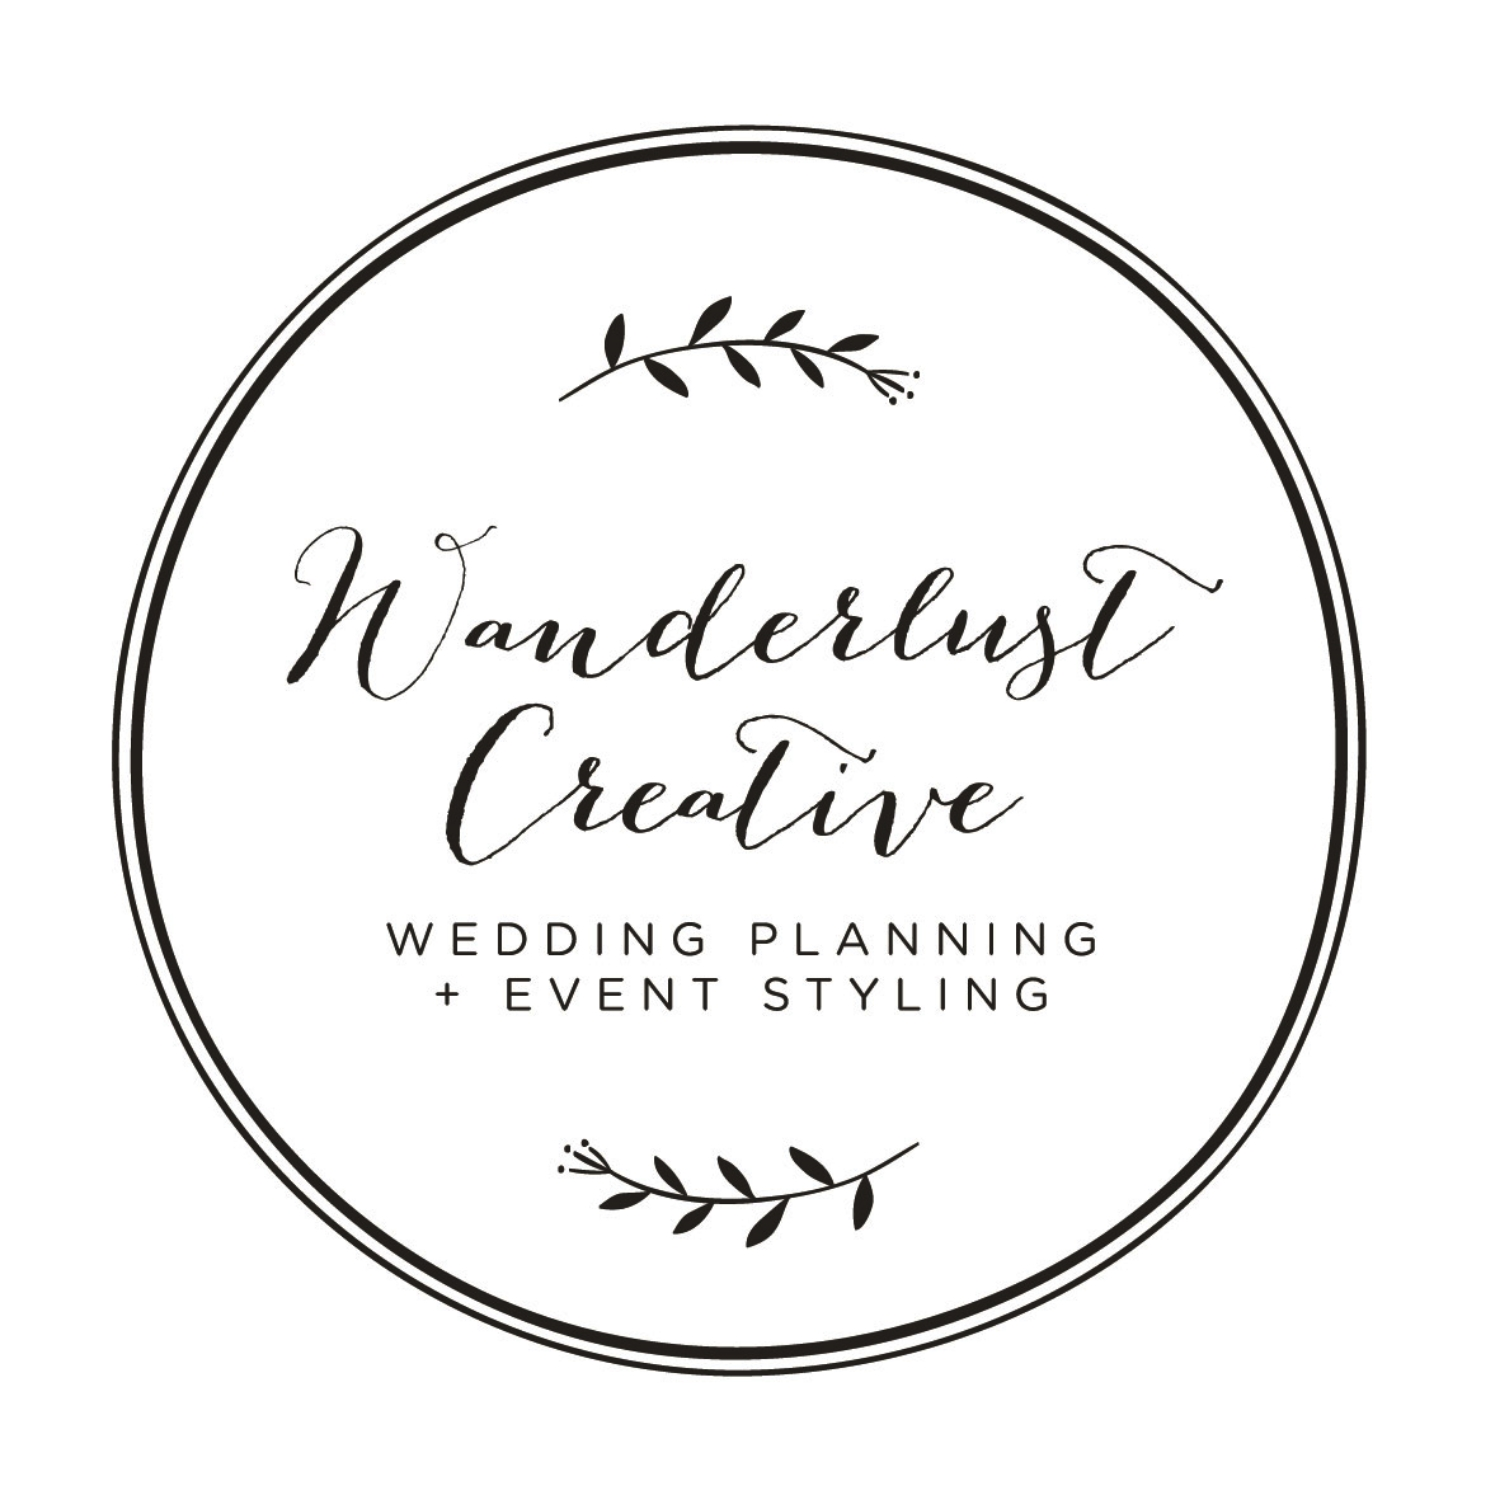 WANDERLUST CREATIVE  Boutique wedding planning and event styling